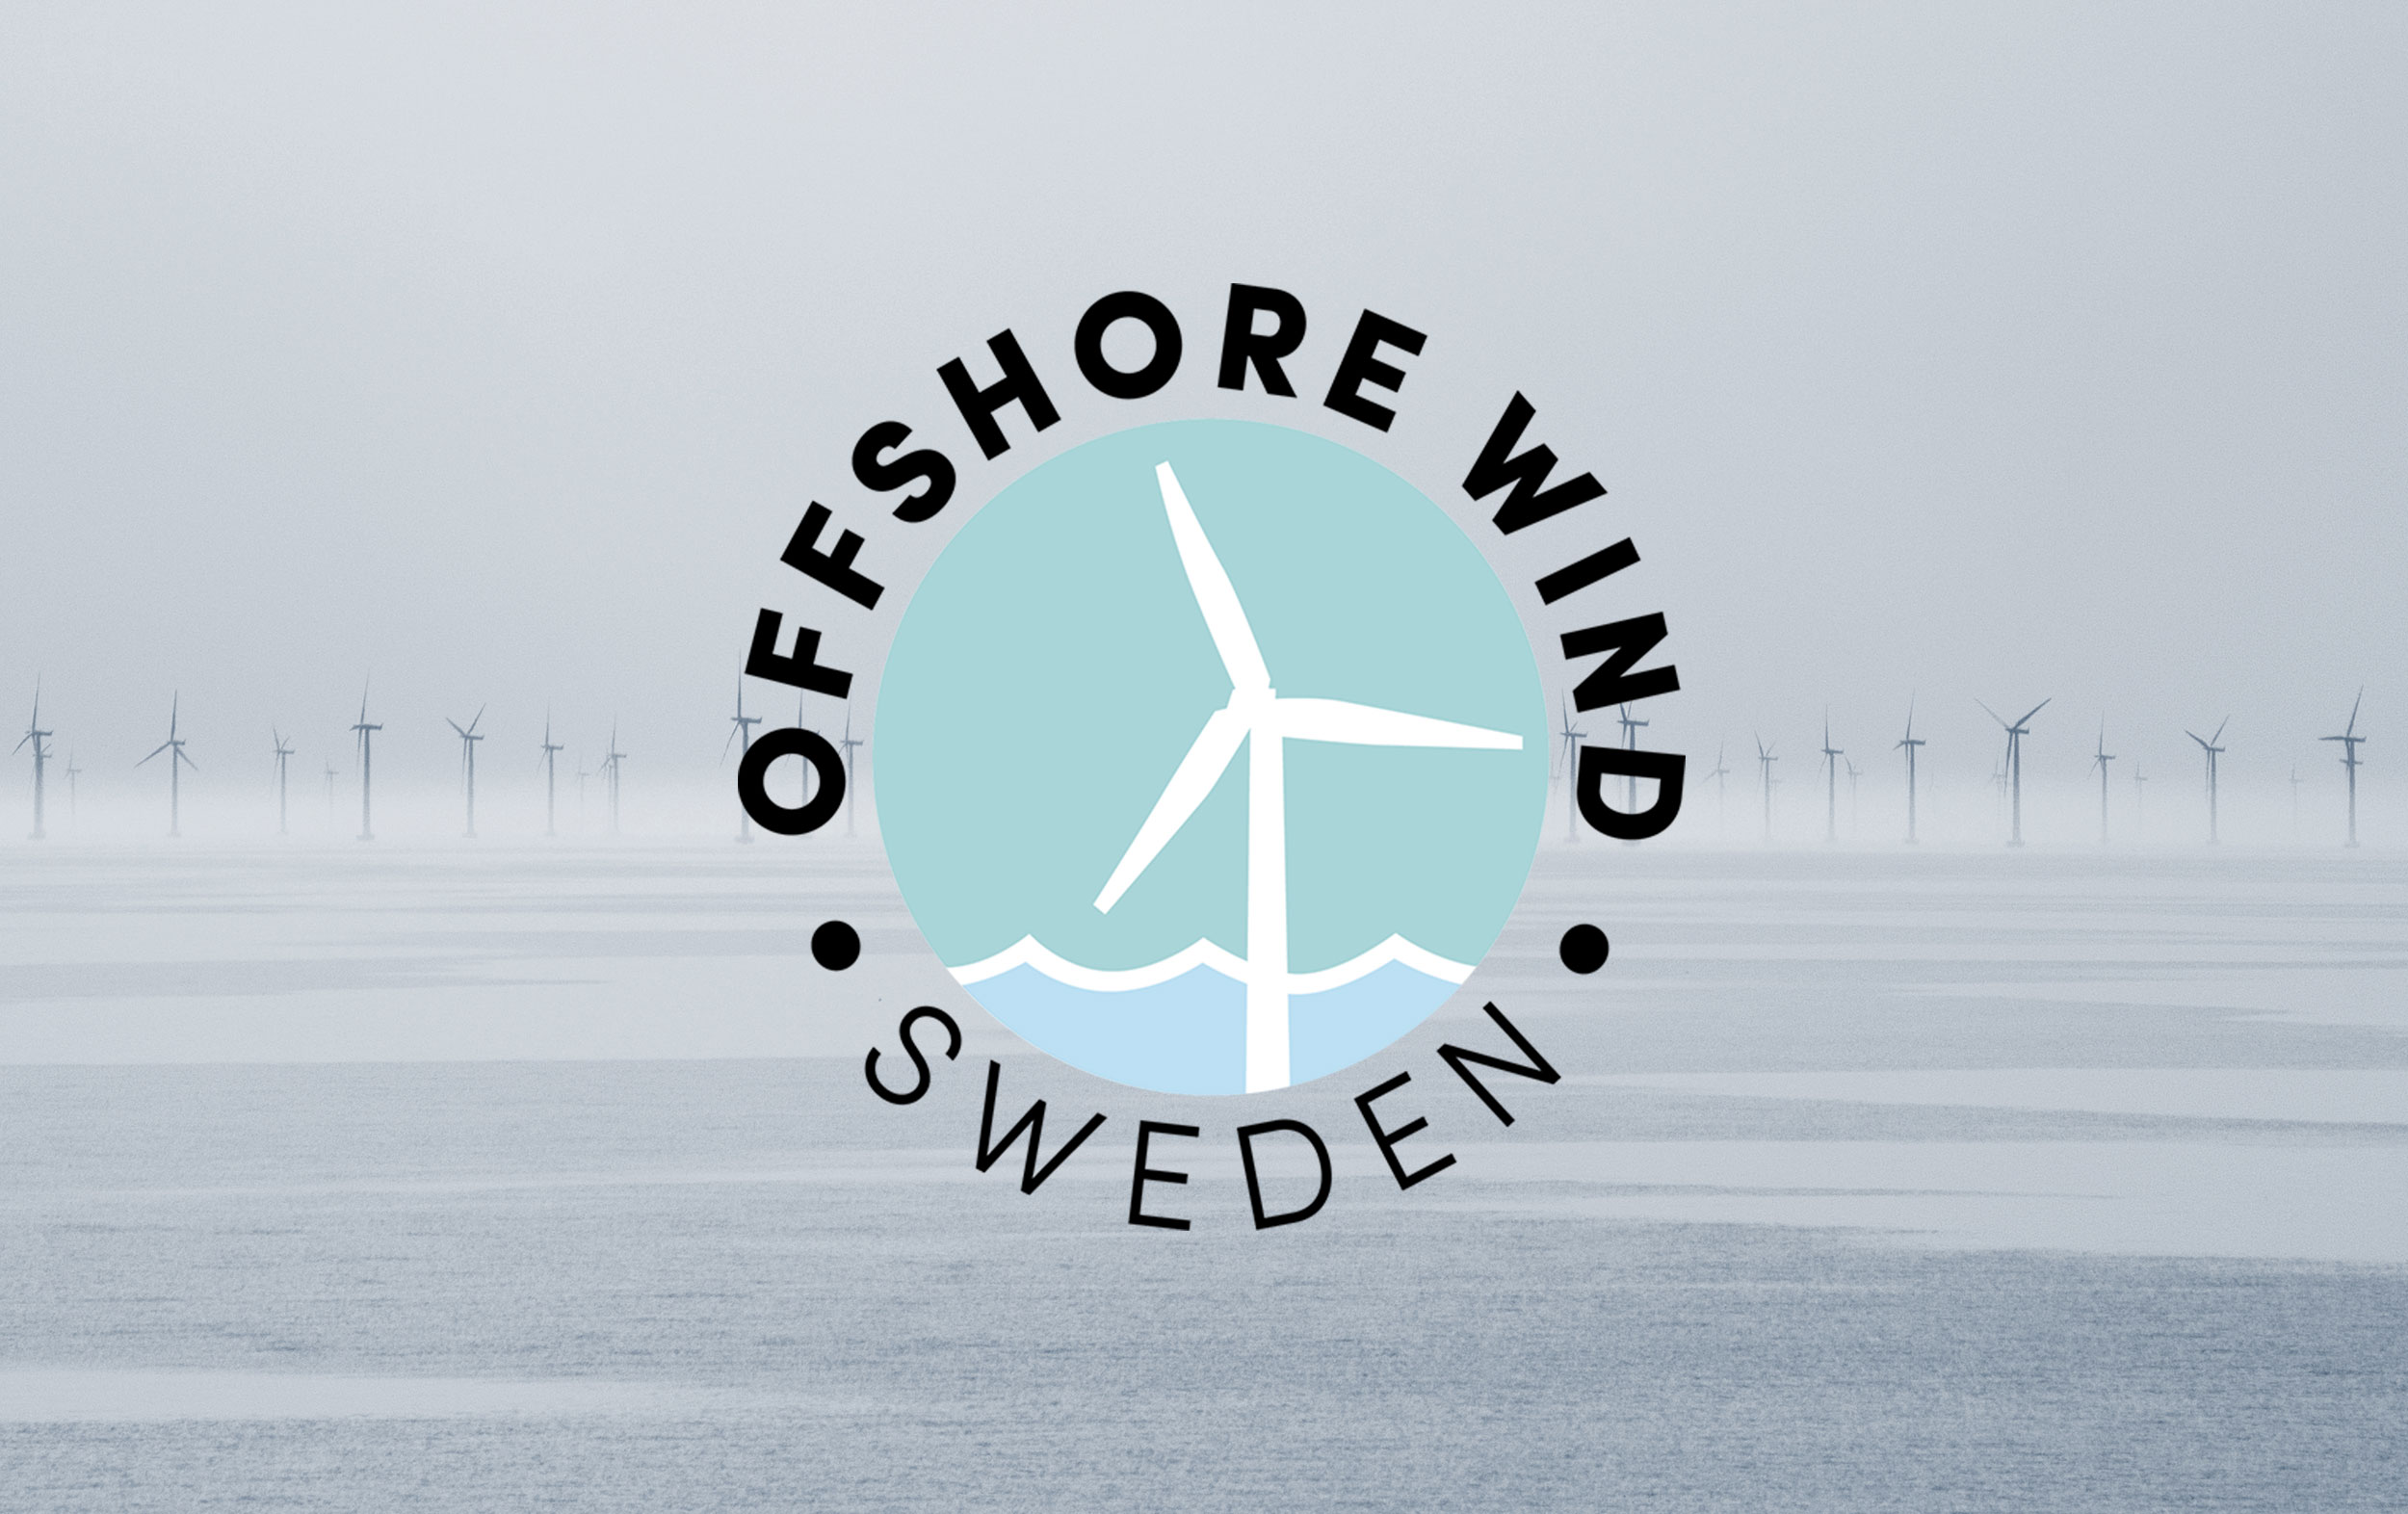 Offshore Wind Sweden